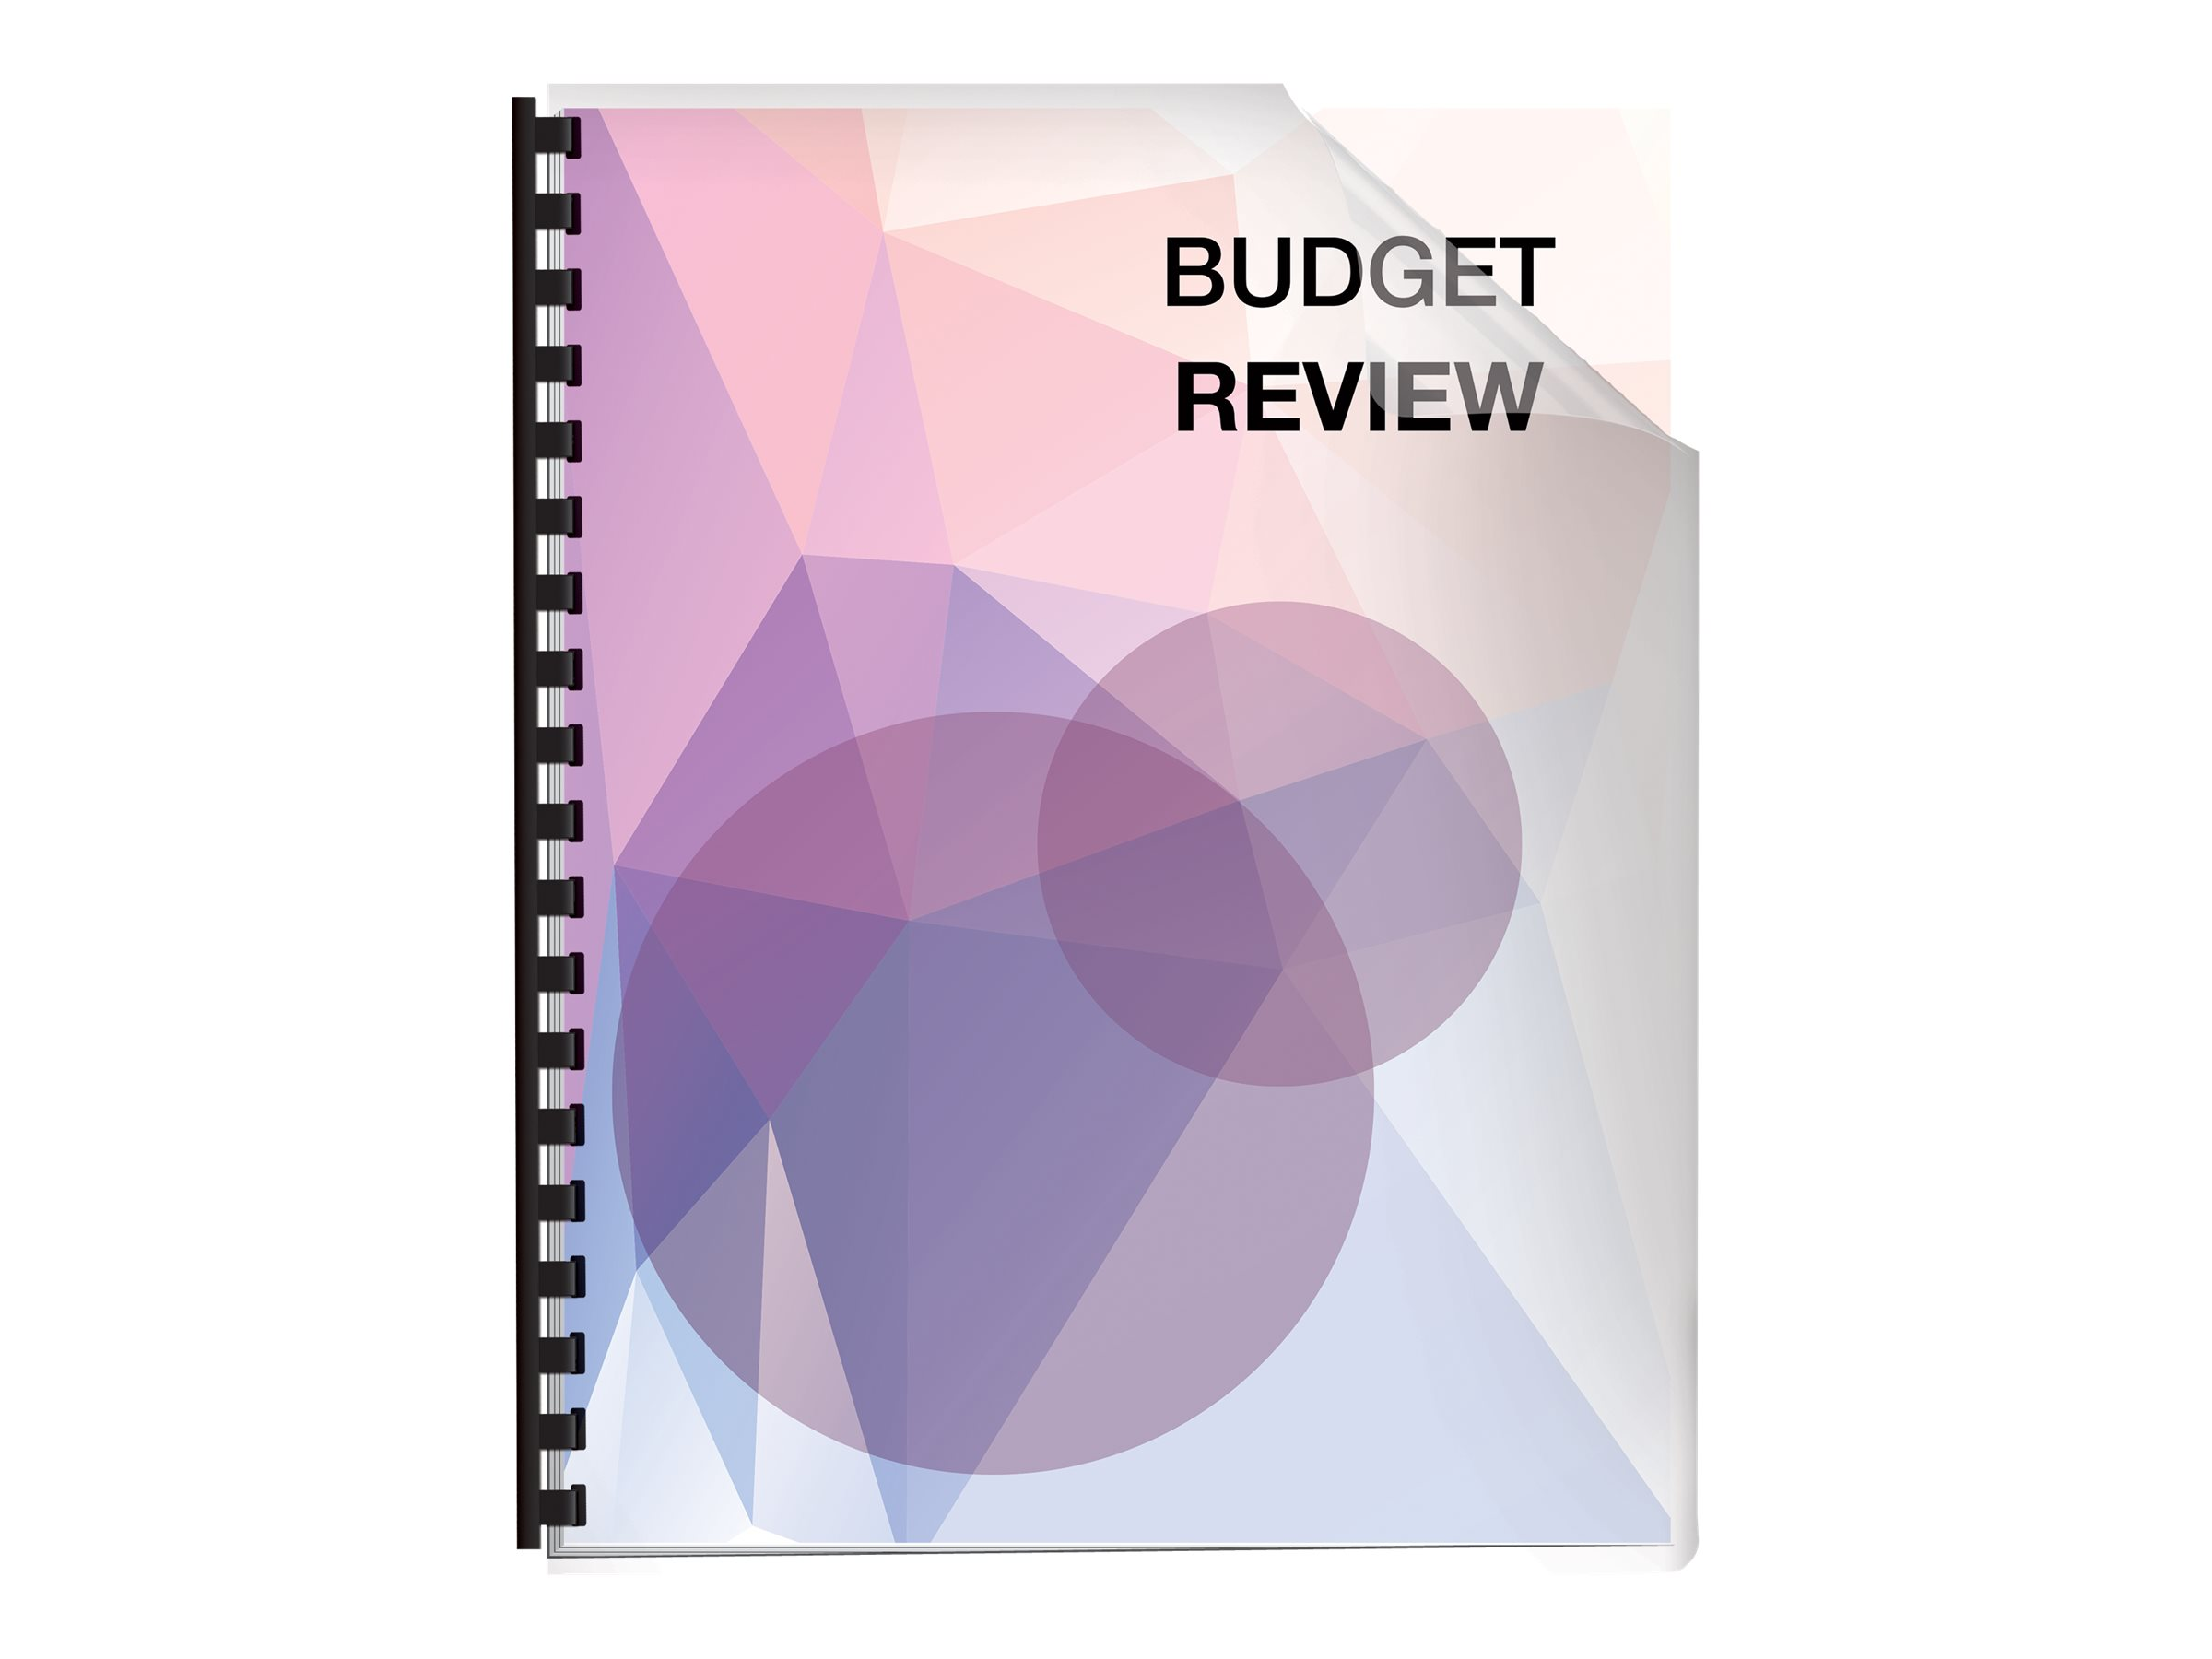 Fellowes Futura Presentation Covers Oversize, Frosted - 25 pcs. - binding cover